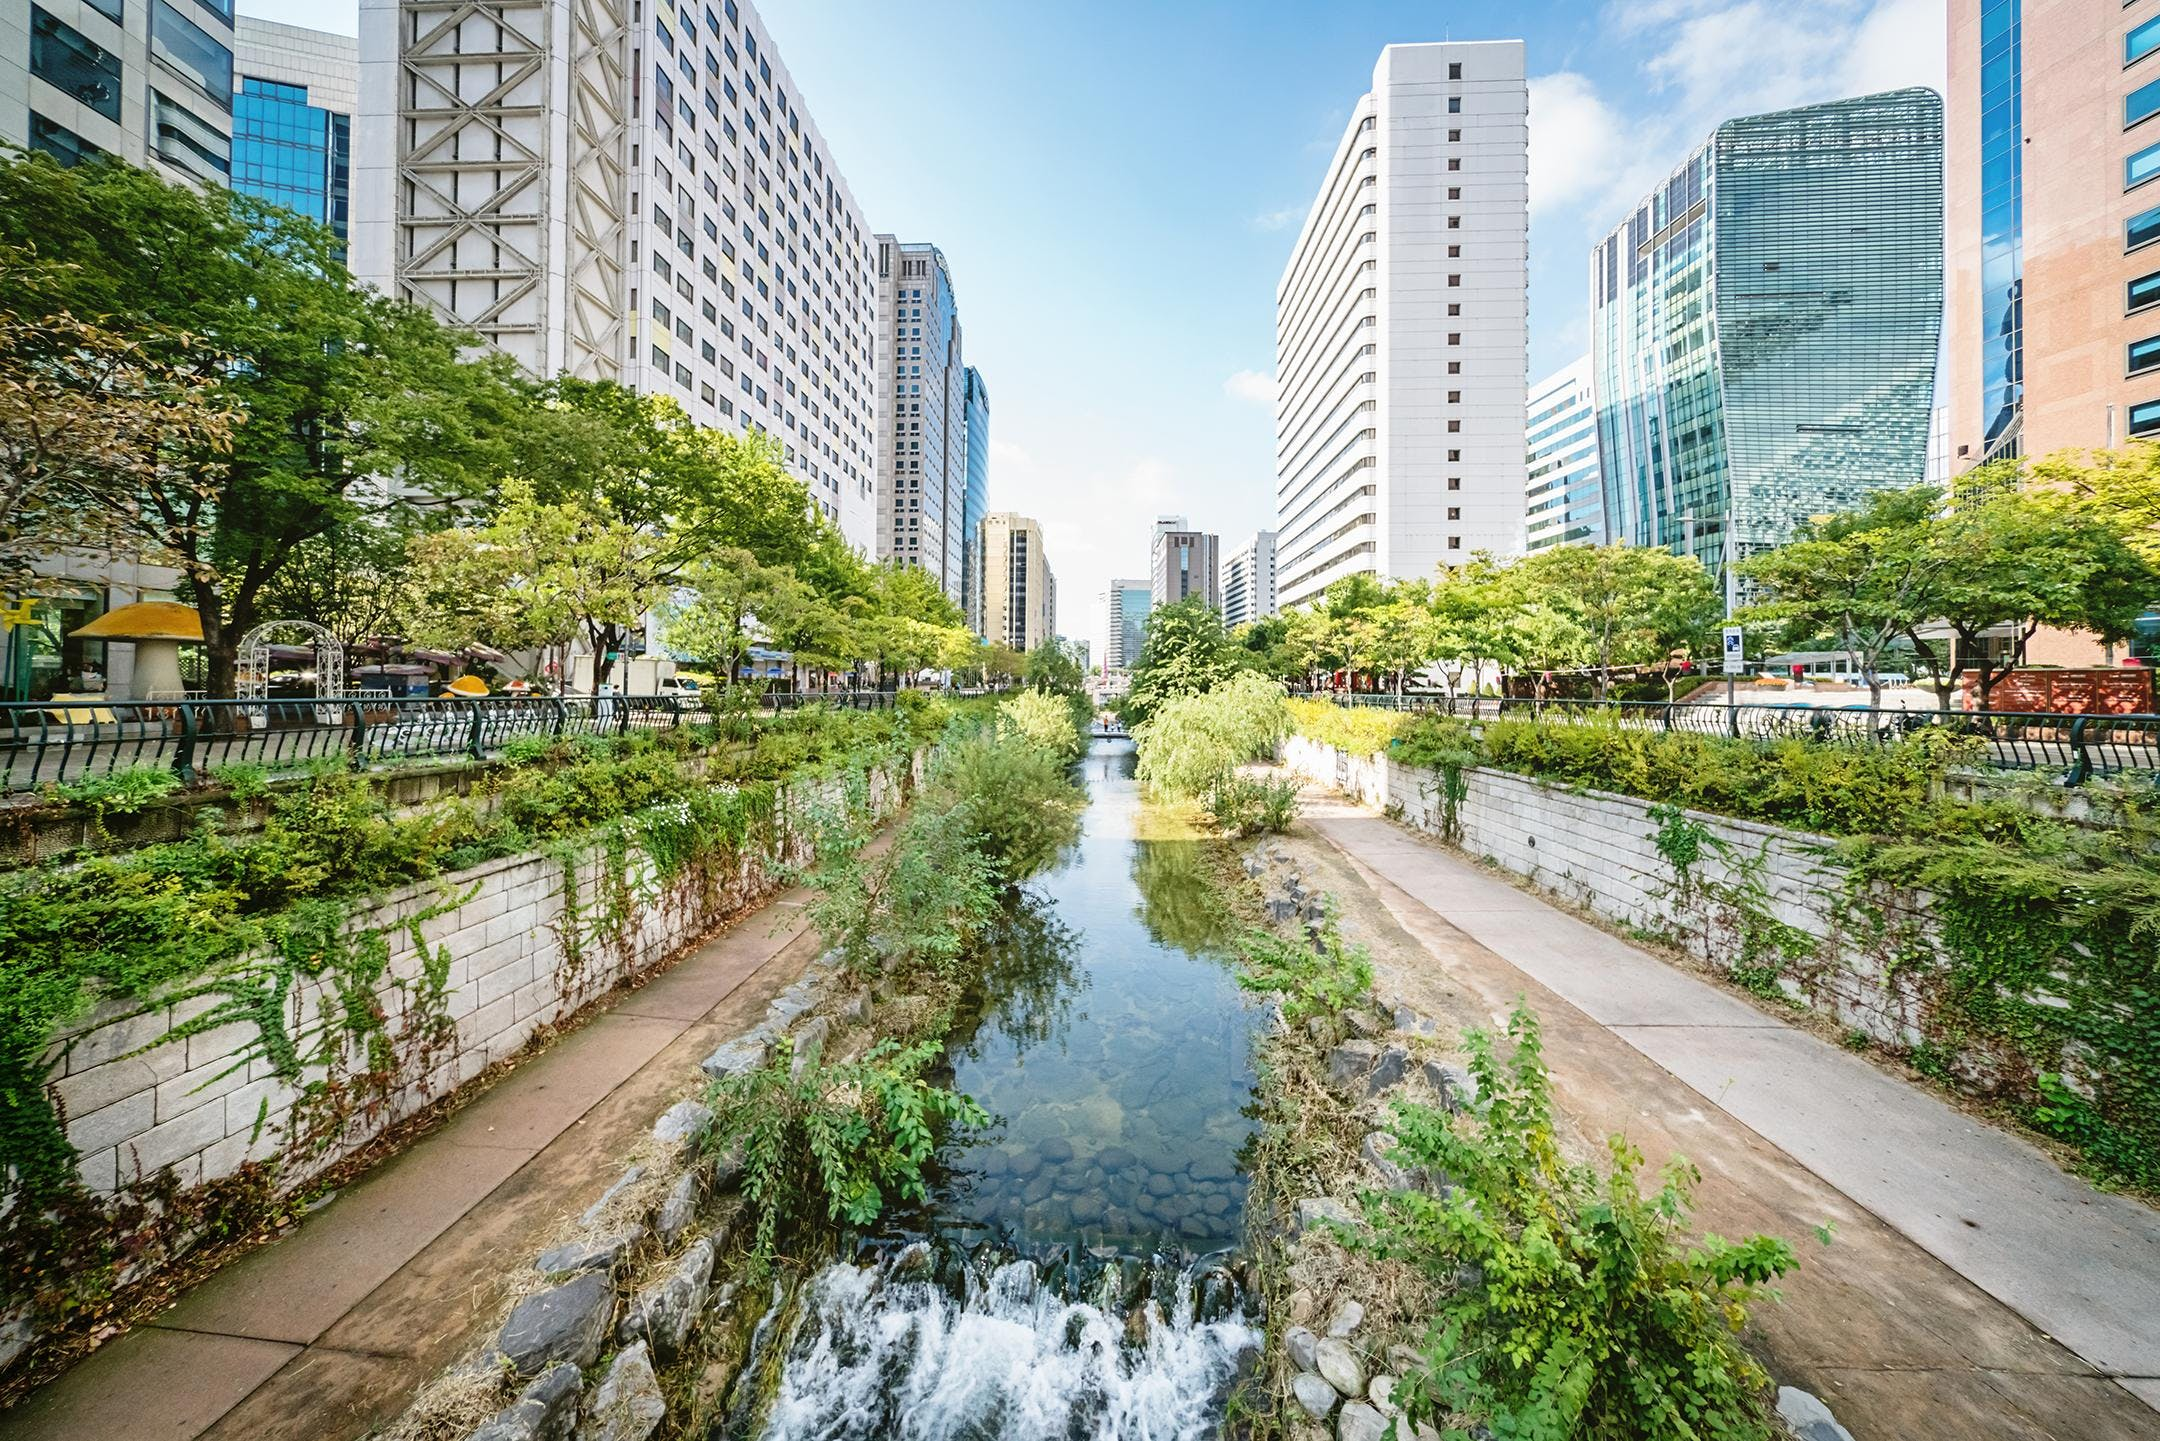 Cities of the future – water wise, resilient,